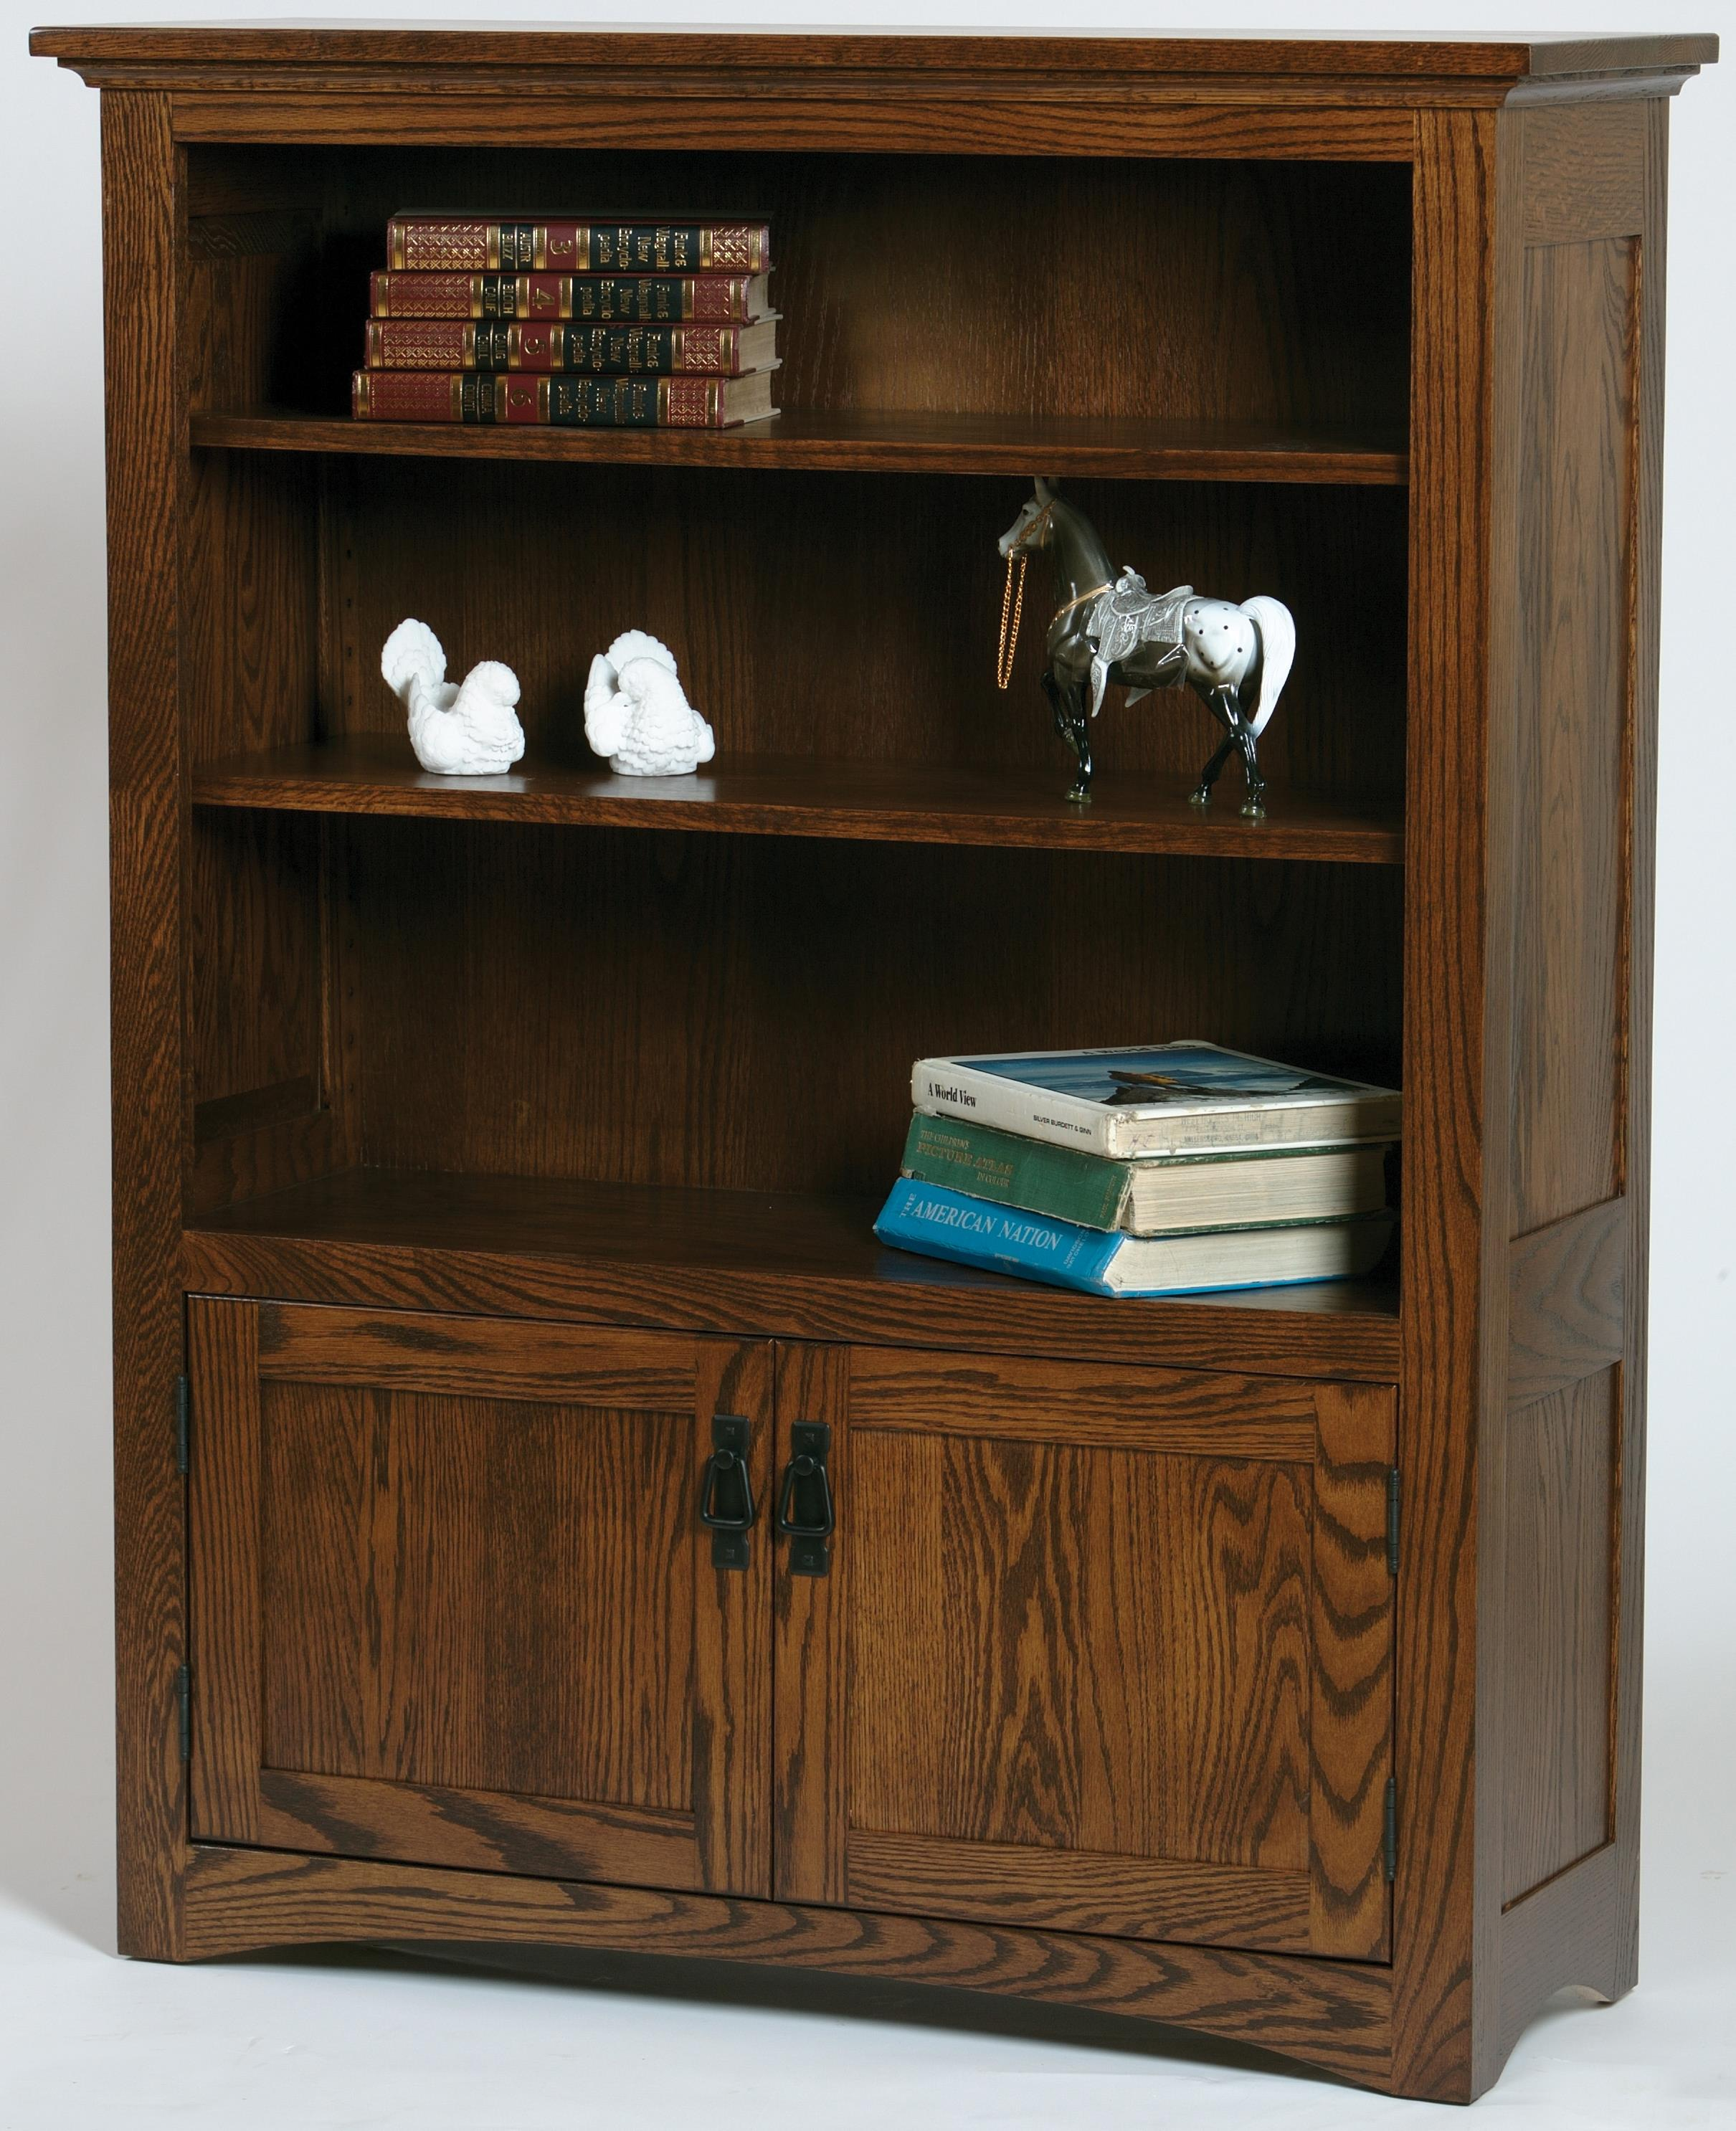 Wonder Wood Bookcases Customizable Mission Bookcase by Wonder Wood at Saugerties Furniture Mart